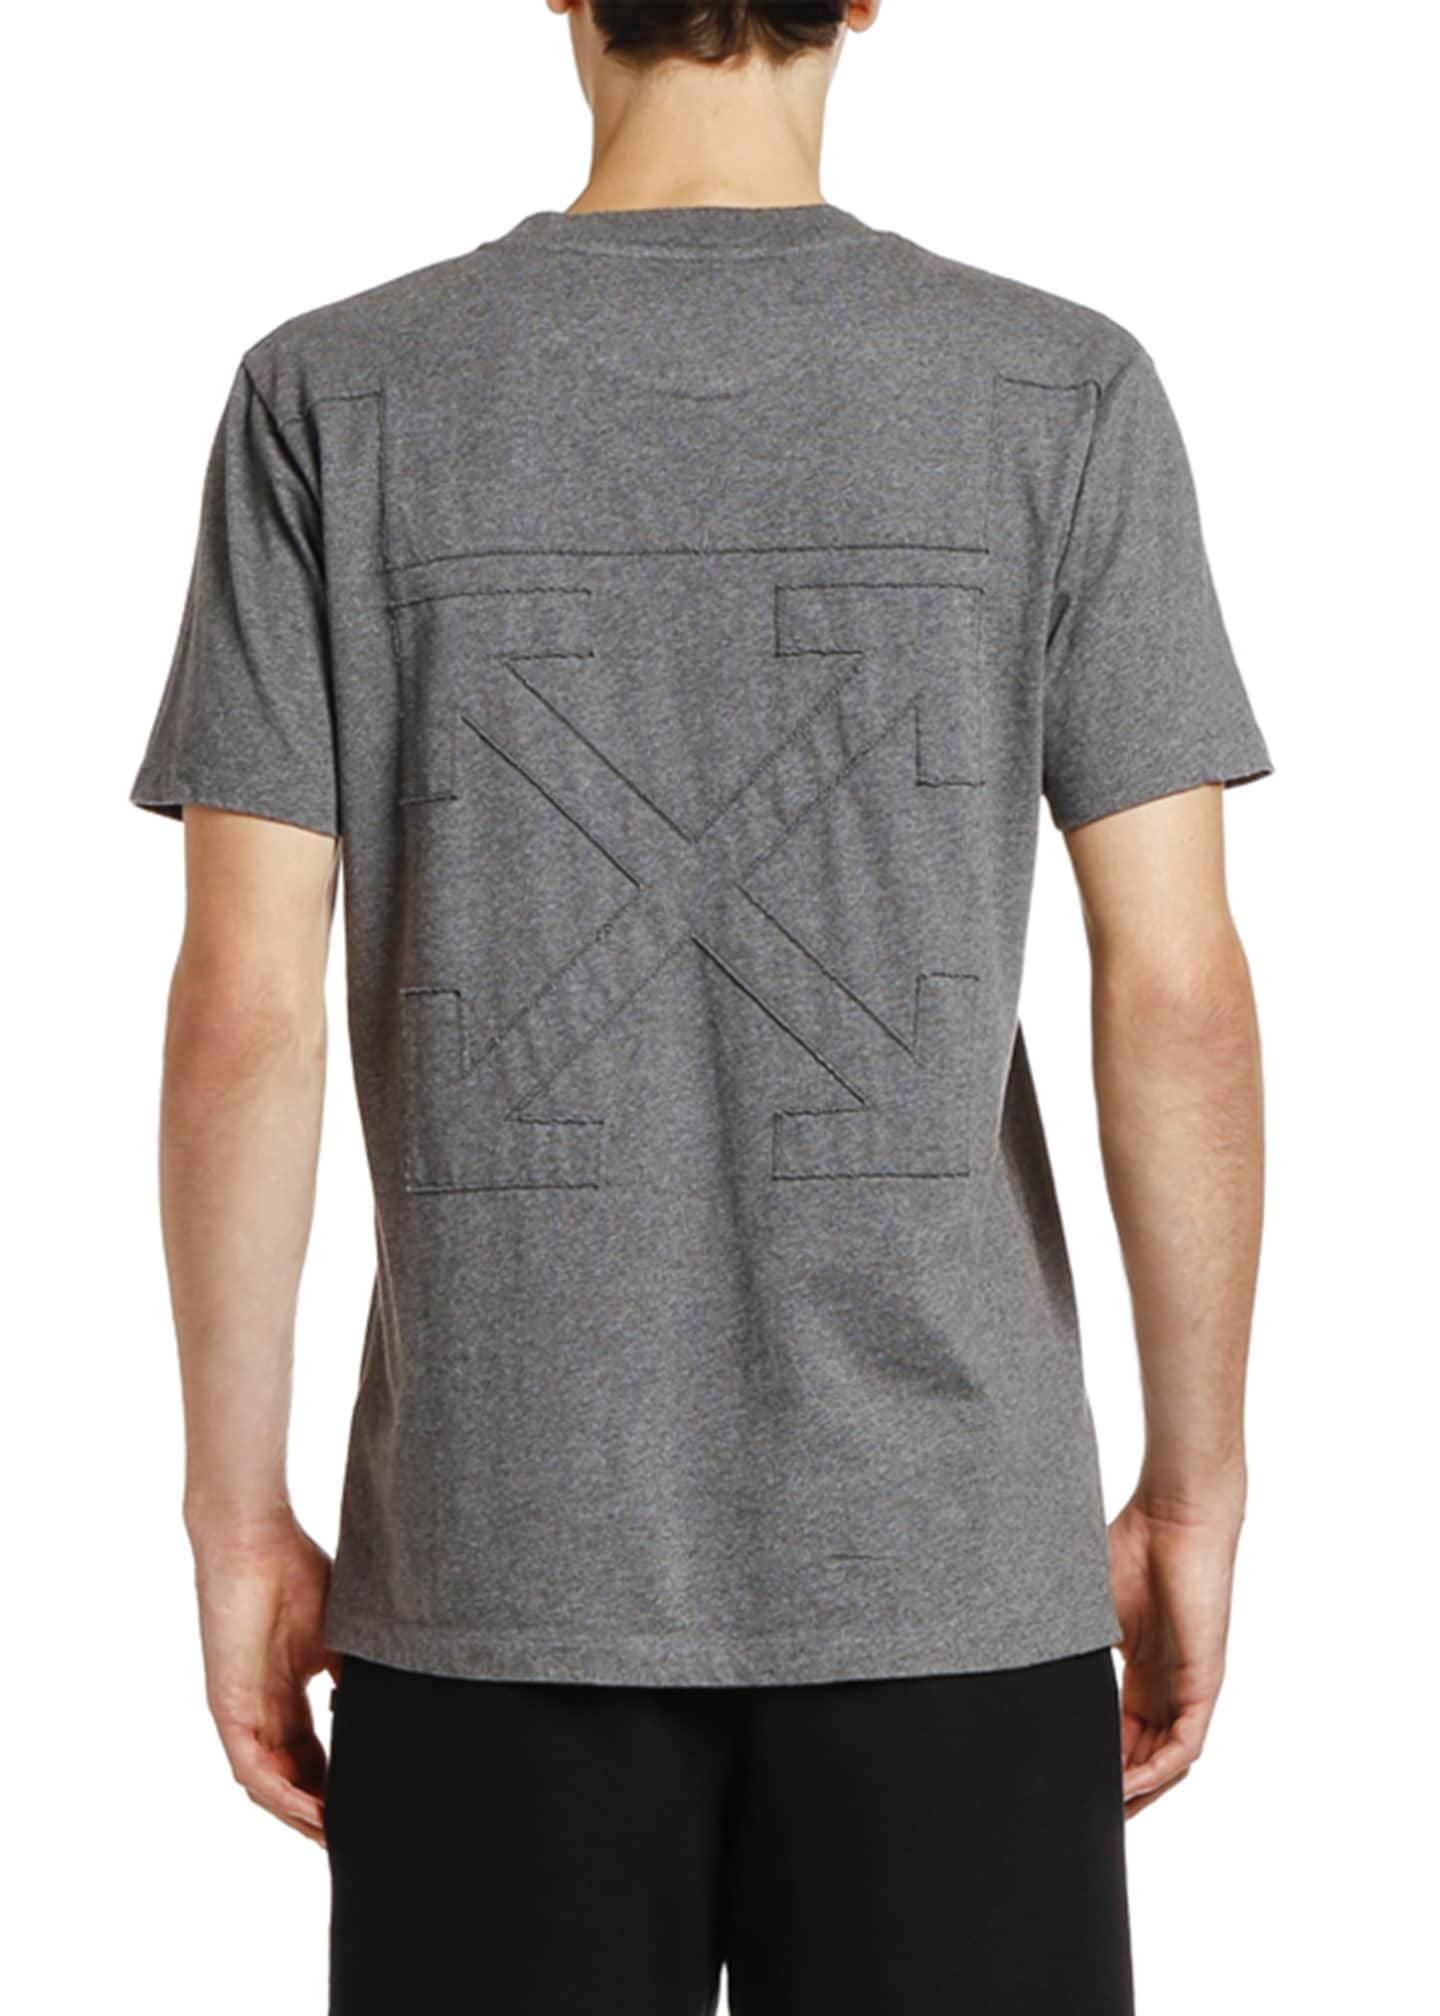 Image 2 of 2: Men's Arrow Logo Graphic Slim T-Shirt